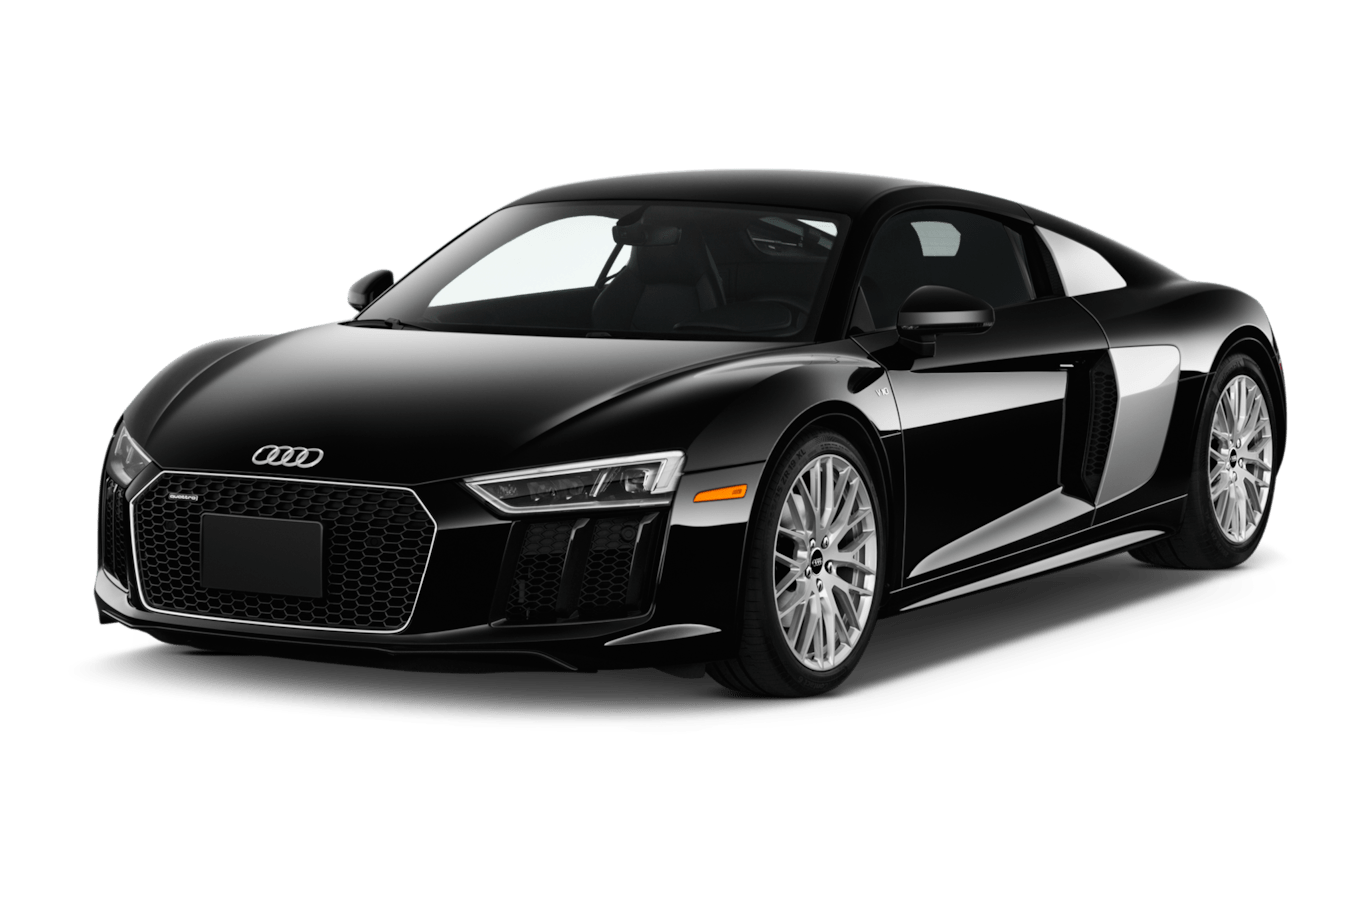 2018 Audi R8 Reviews And Rating Motortrend